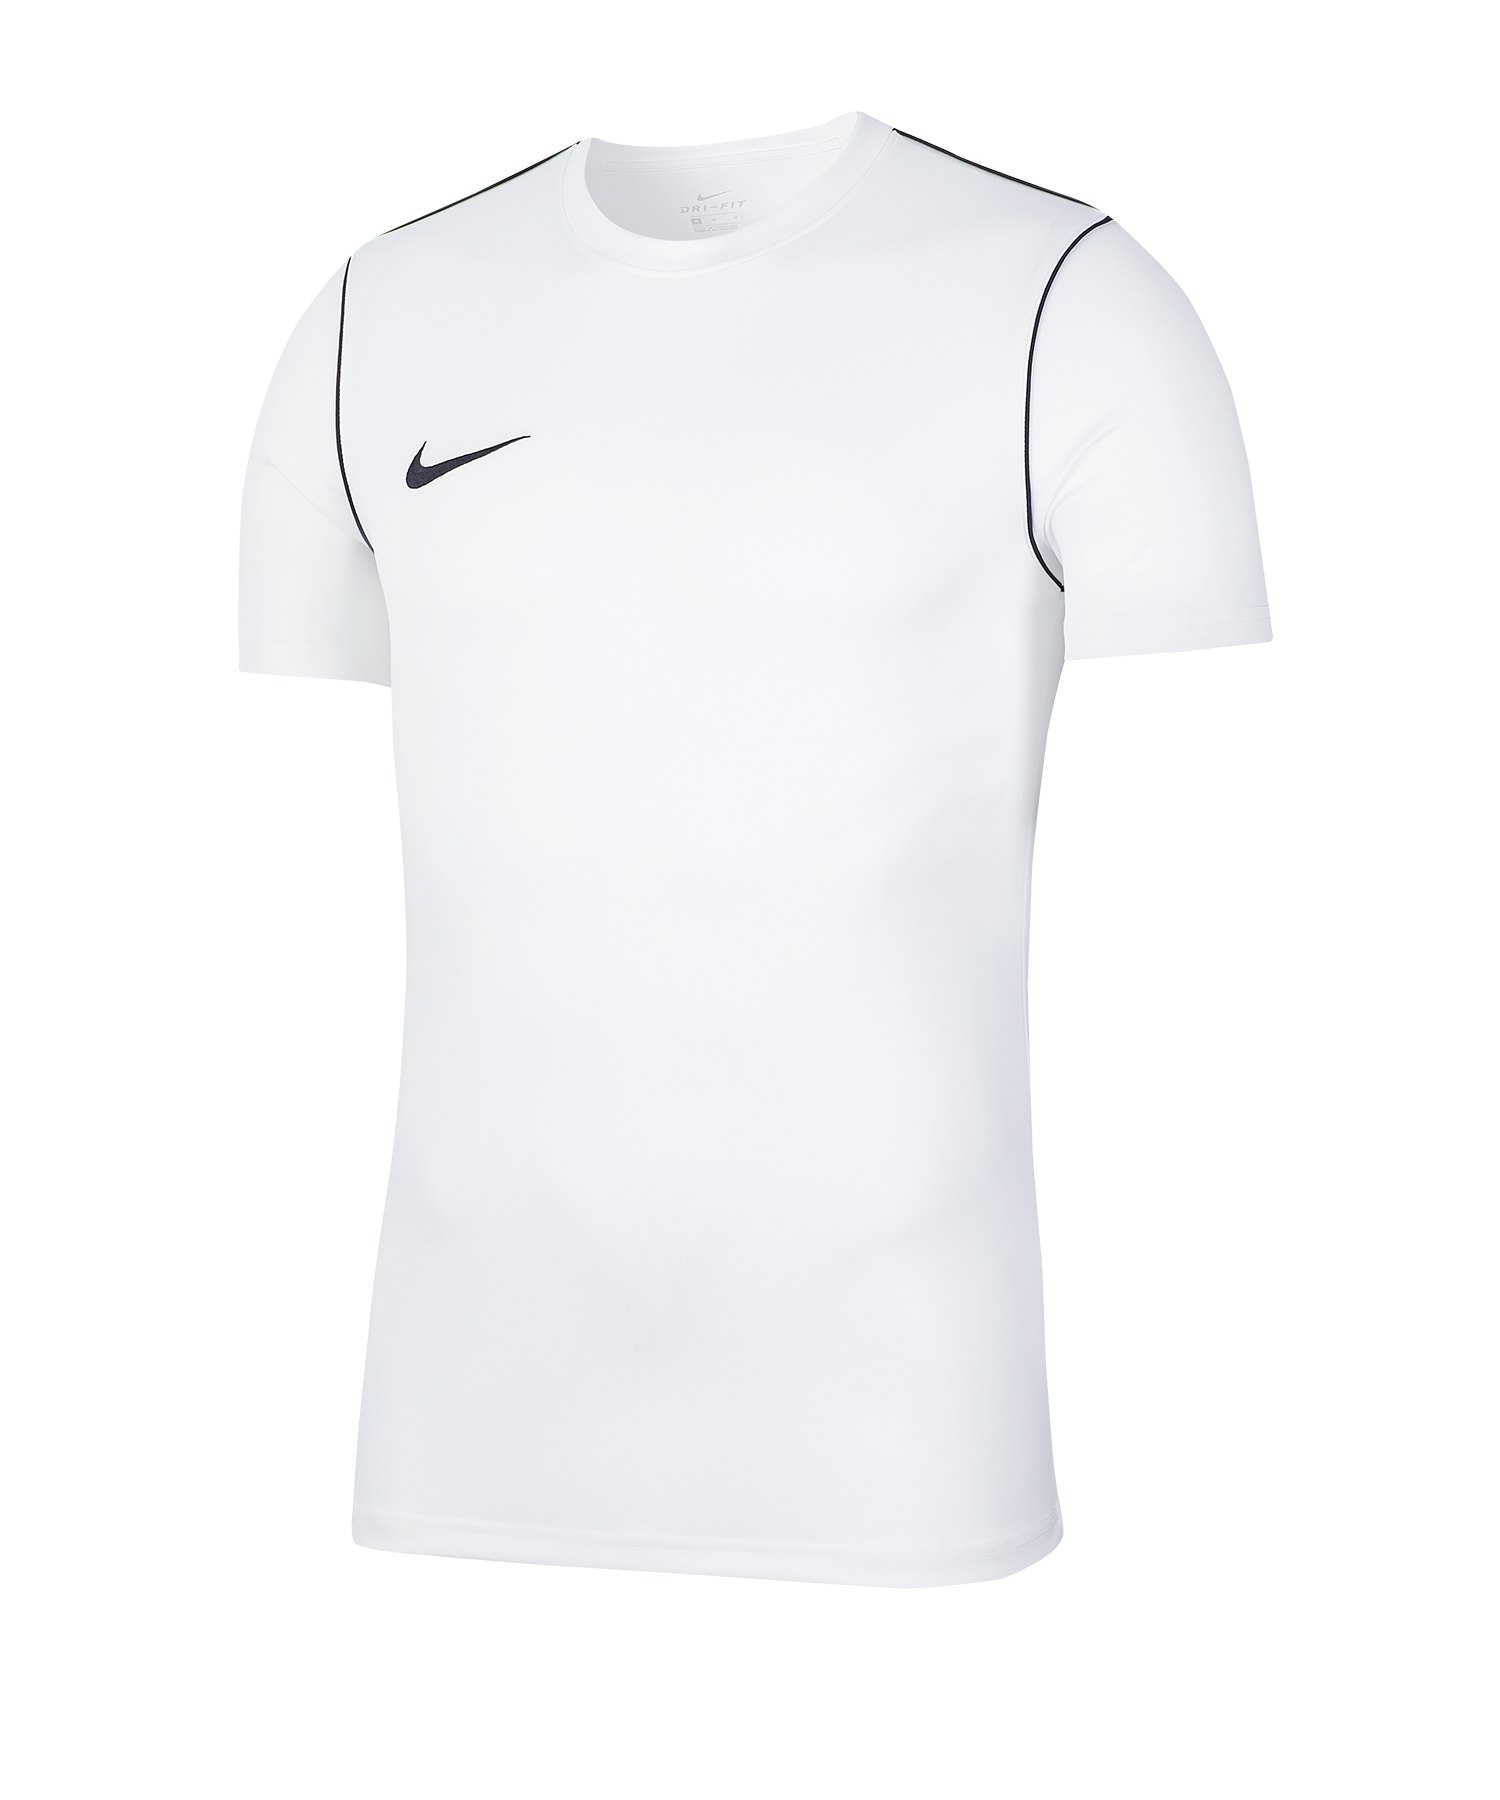 Nike Park 20 Training Shirt Weiss F100 - weiss